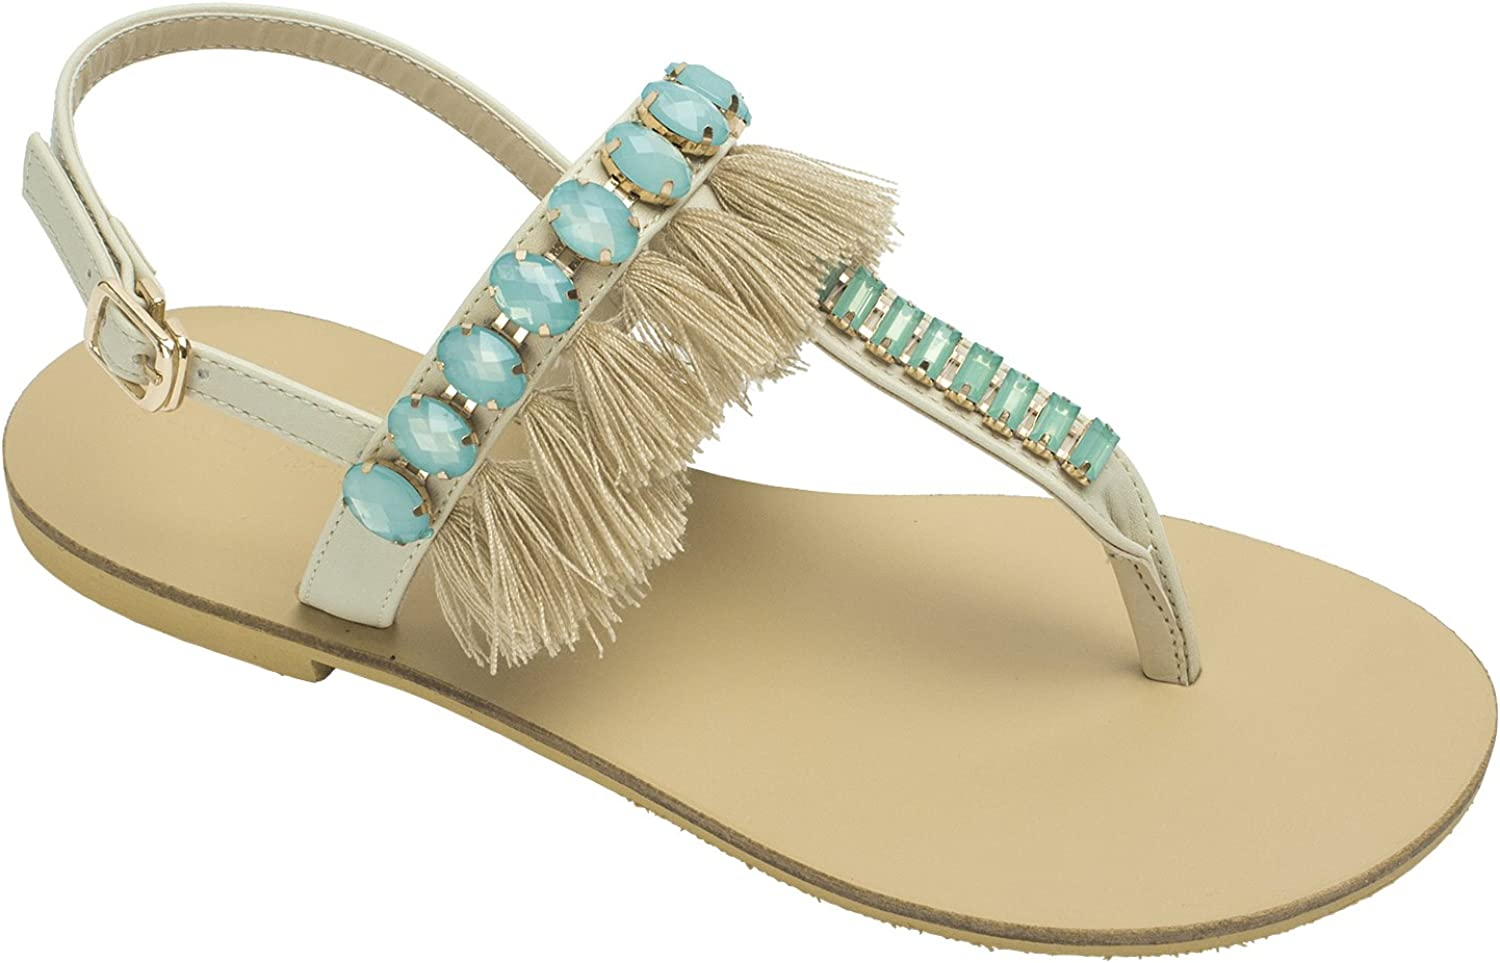 AnnaKastle Womens Beaded Thong Flip Flop Sandal